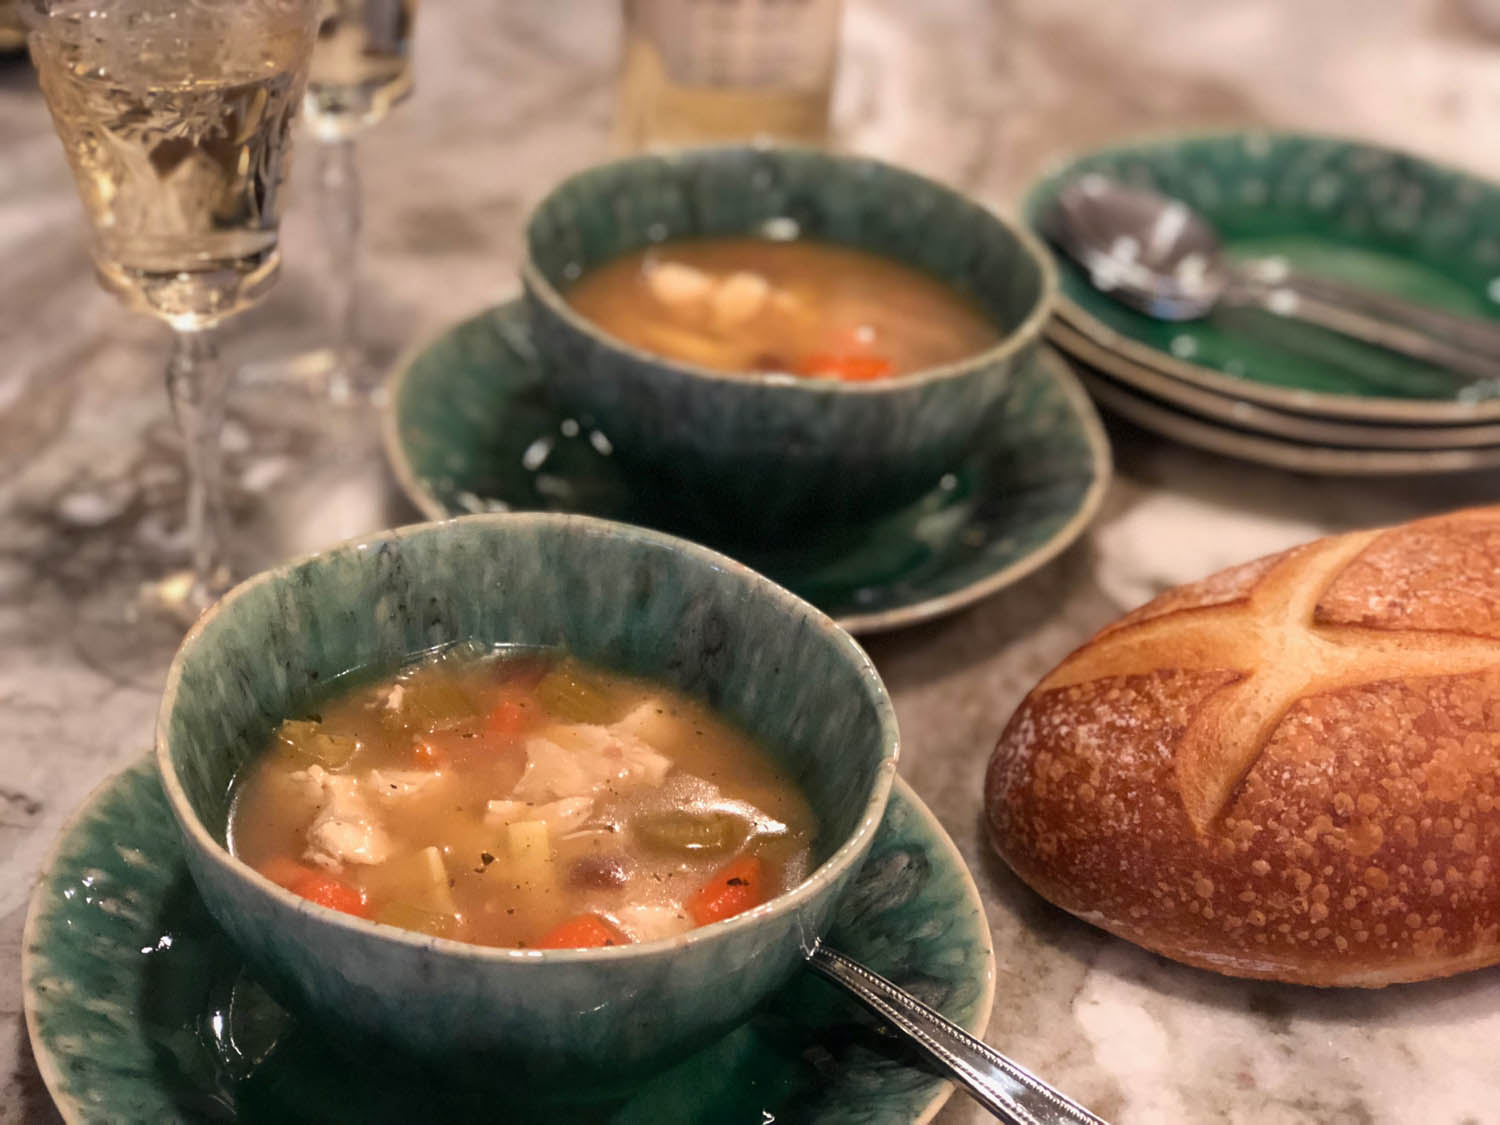 Homemade chicken noodle soup served in bowls with french bread and wine.